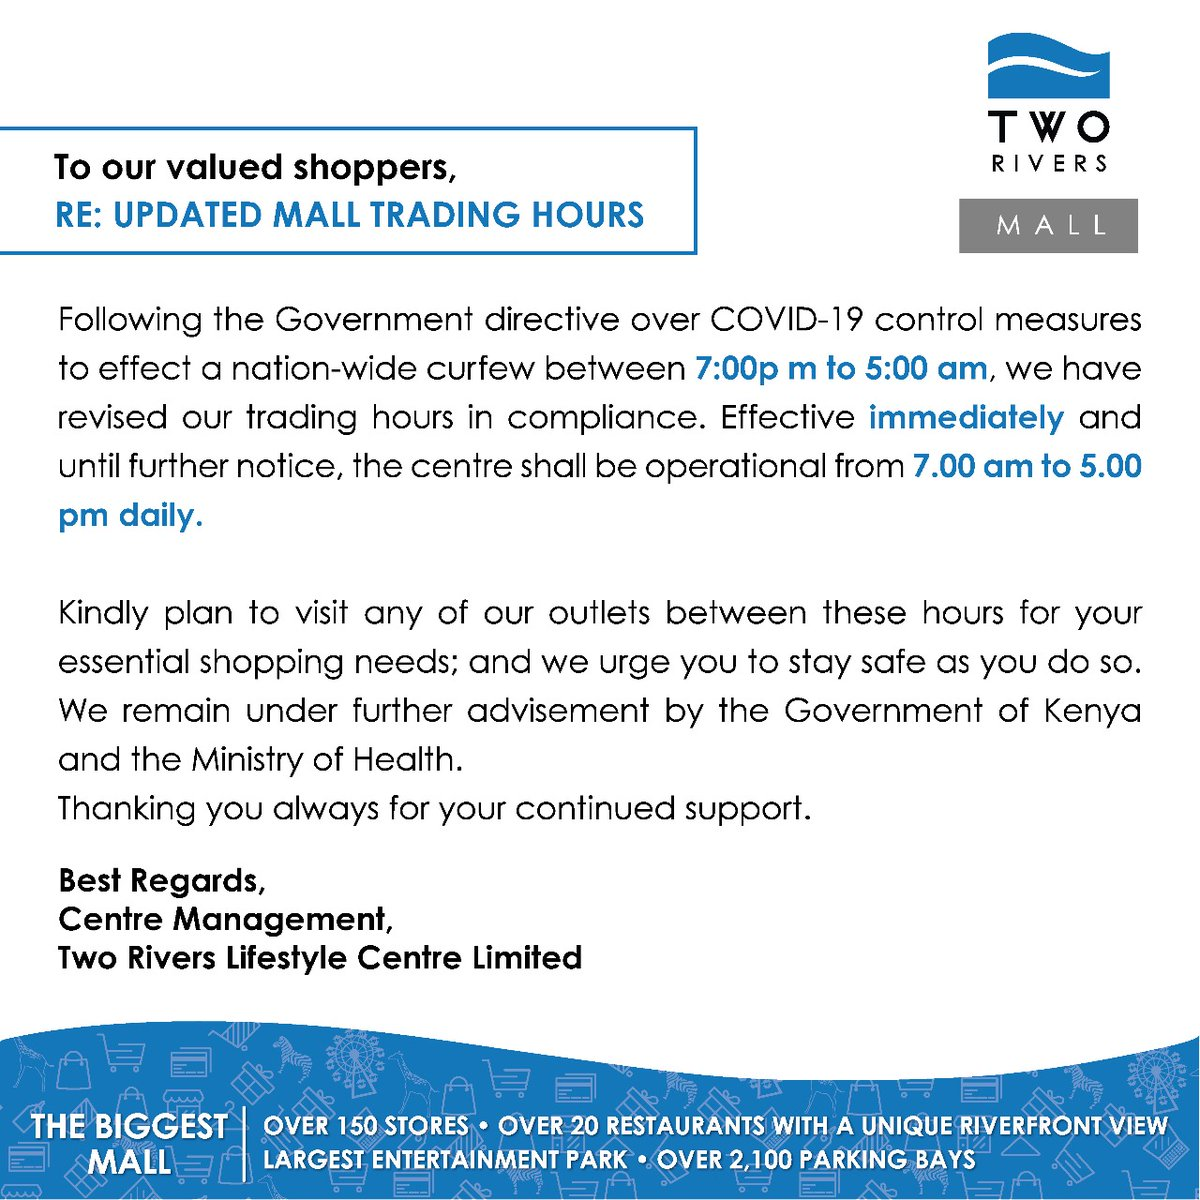 Following the Government directive over COVID-19 control measures to effect a nation-wide curfew between 7.00 pm to 5.00 am, we have revised our trading hours effective immediately and until further notice to 7.00 am to 5.00 pm daily. #WeCareForYou